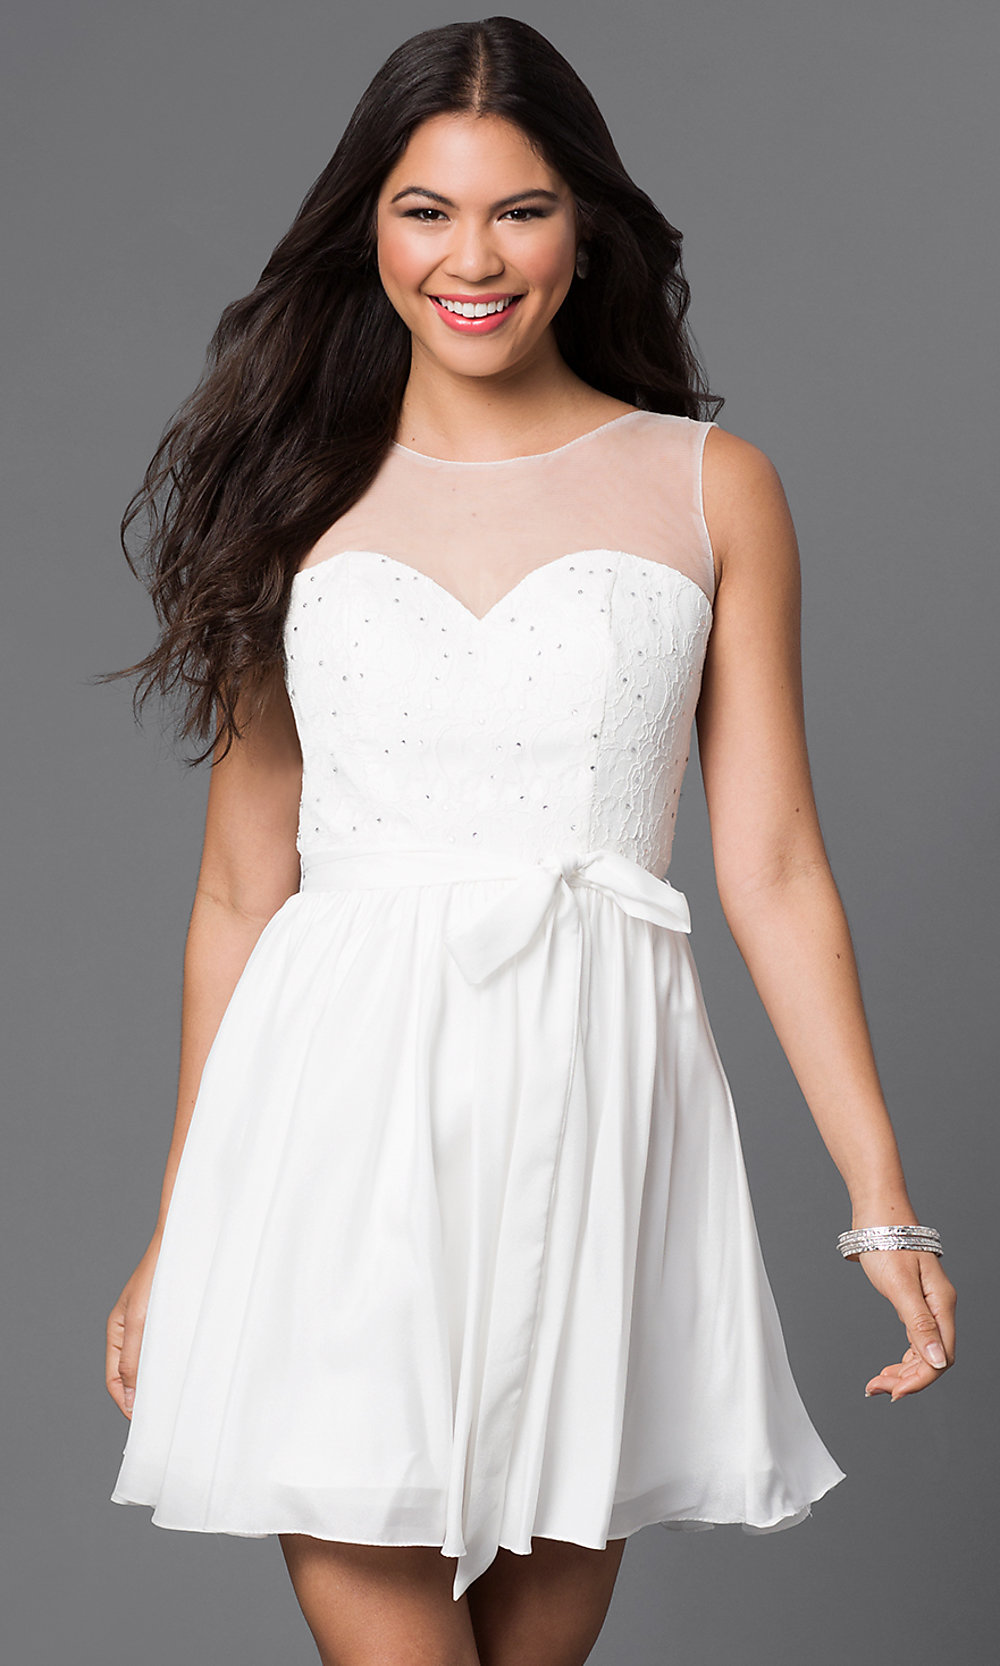 92b4d4340a1 White Dresses For Graduation Jcpenney - Gomes Weine AG